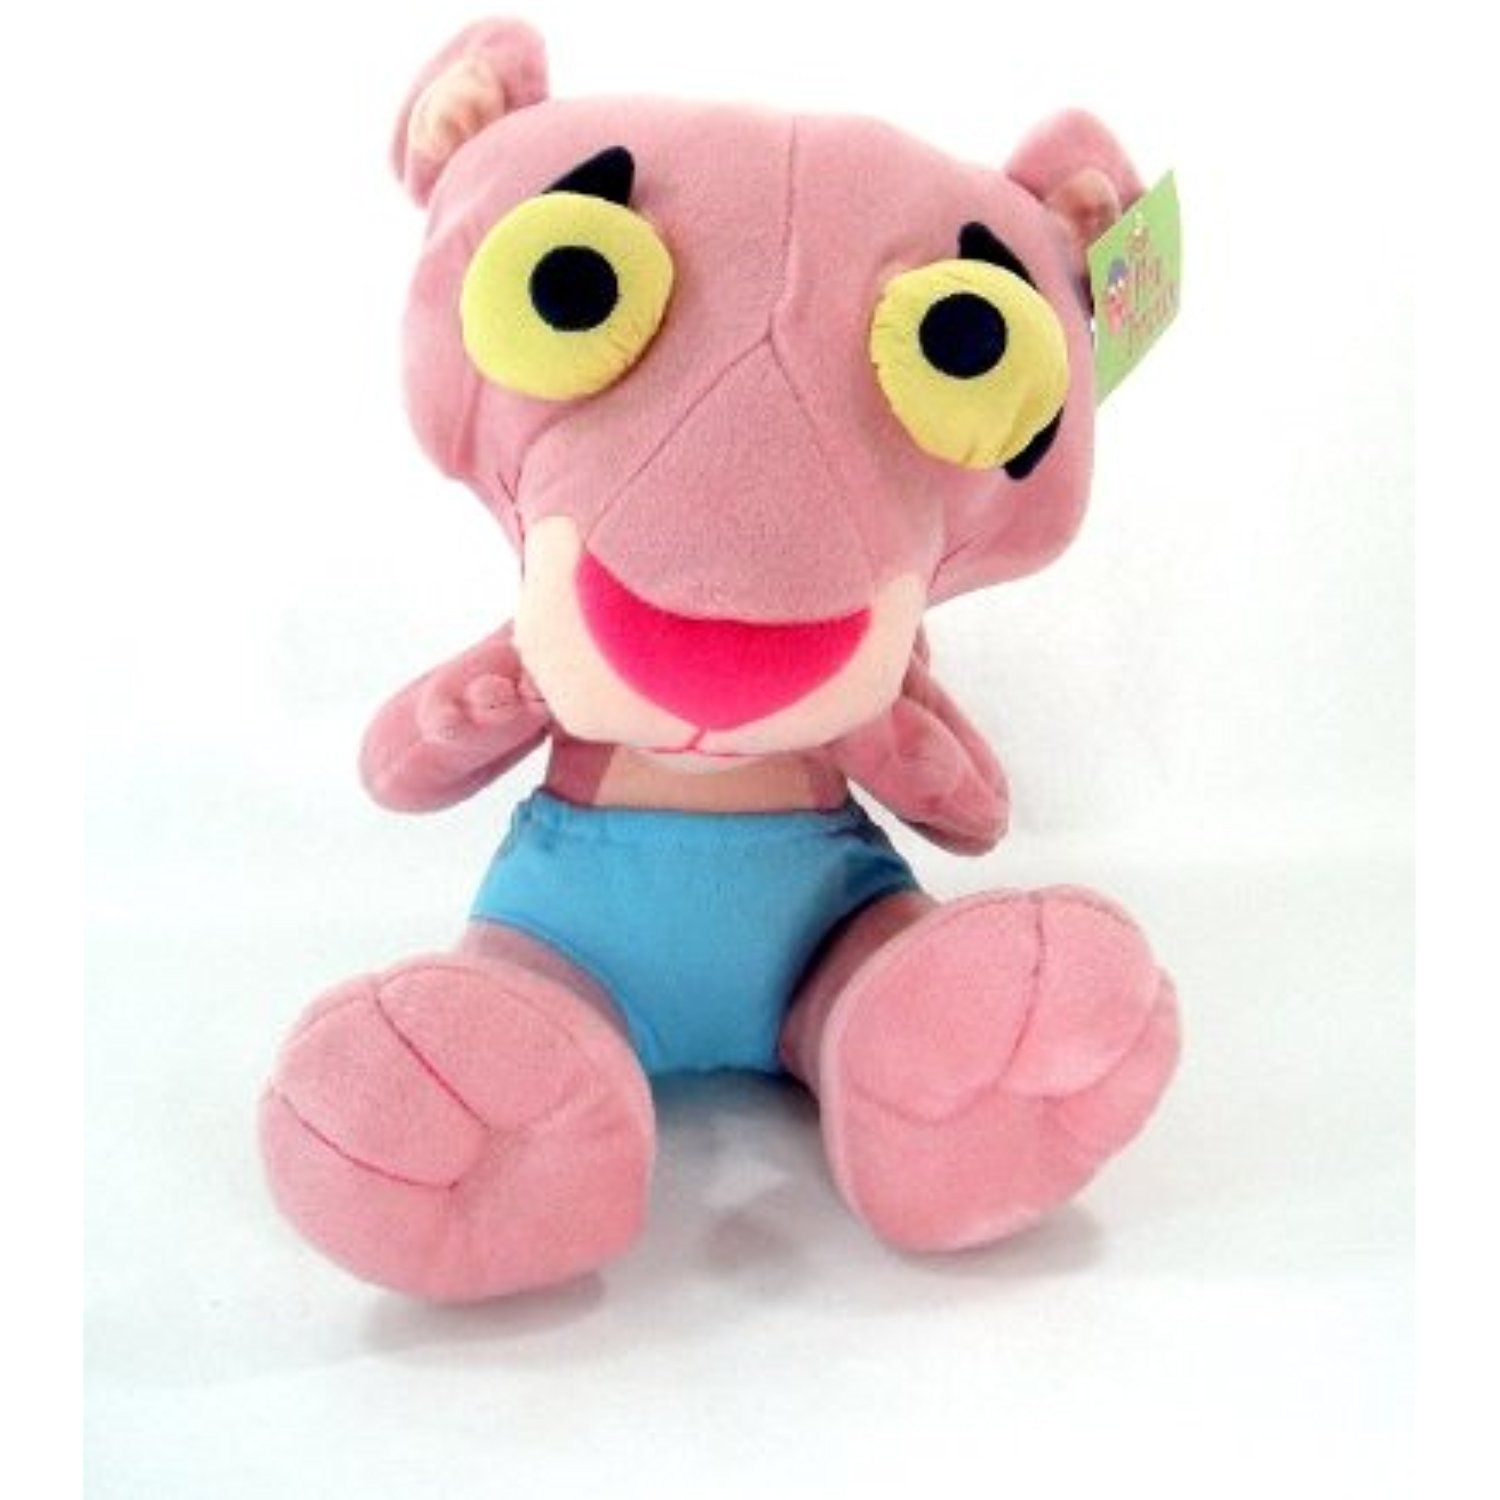 19+ Pink panther stuffed animal ideas in 2021